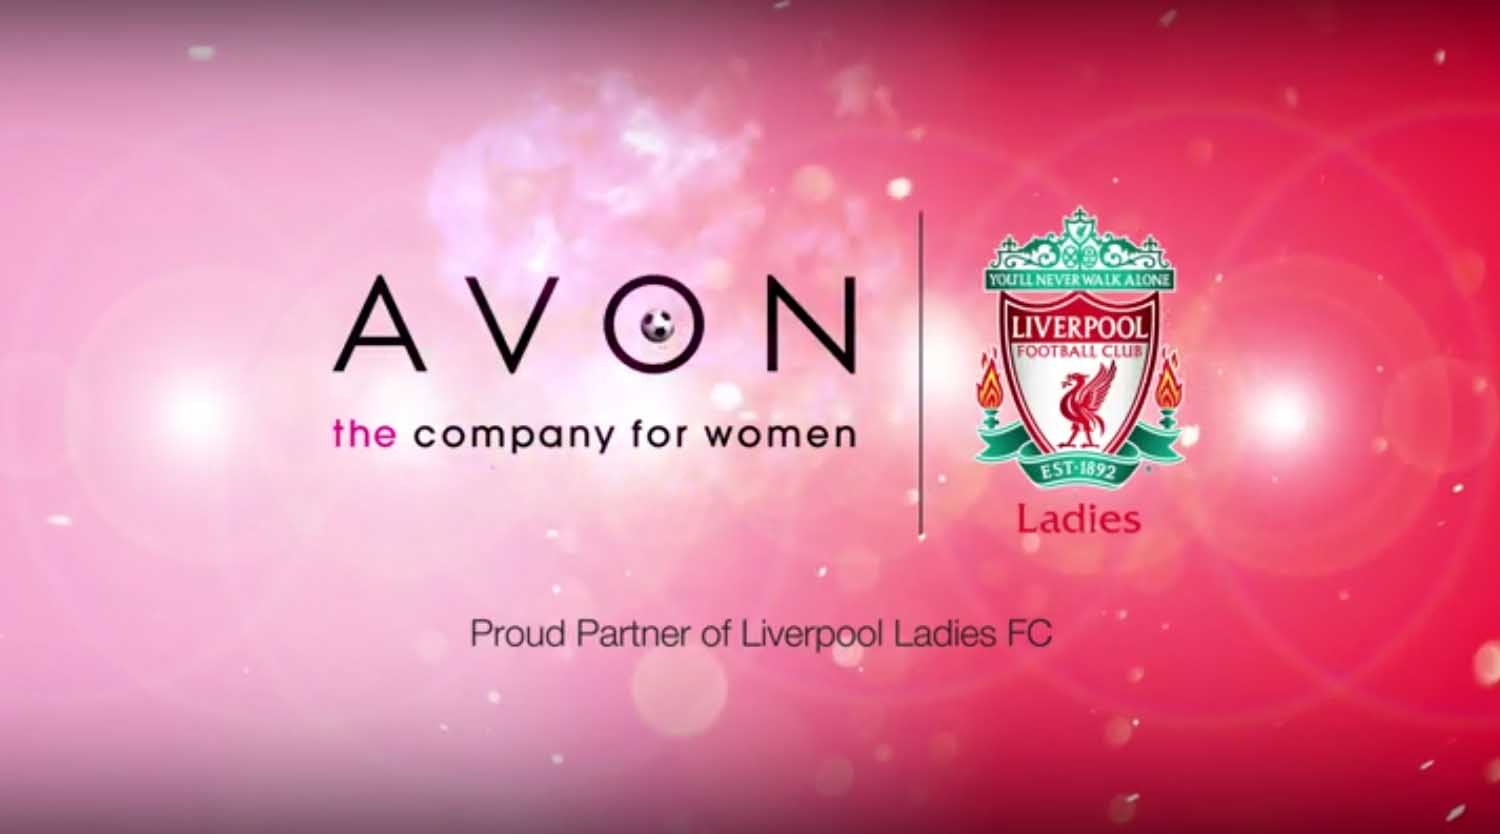 Avon women's football - Liverpool ladies